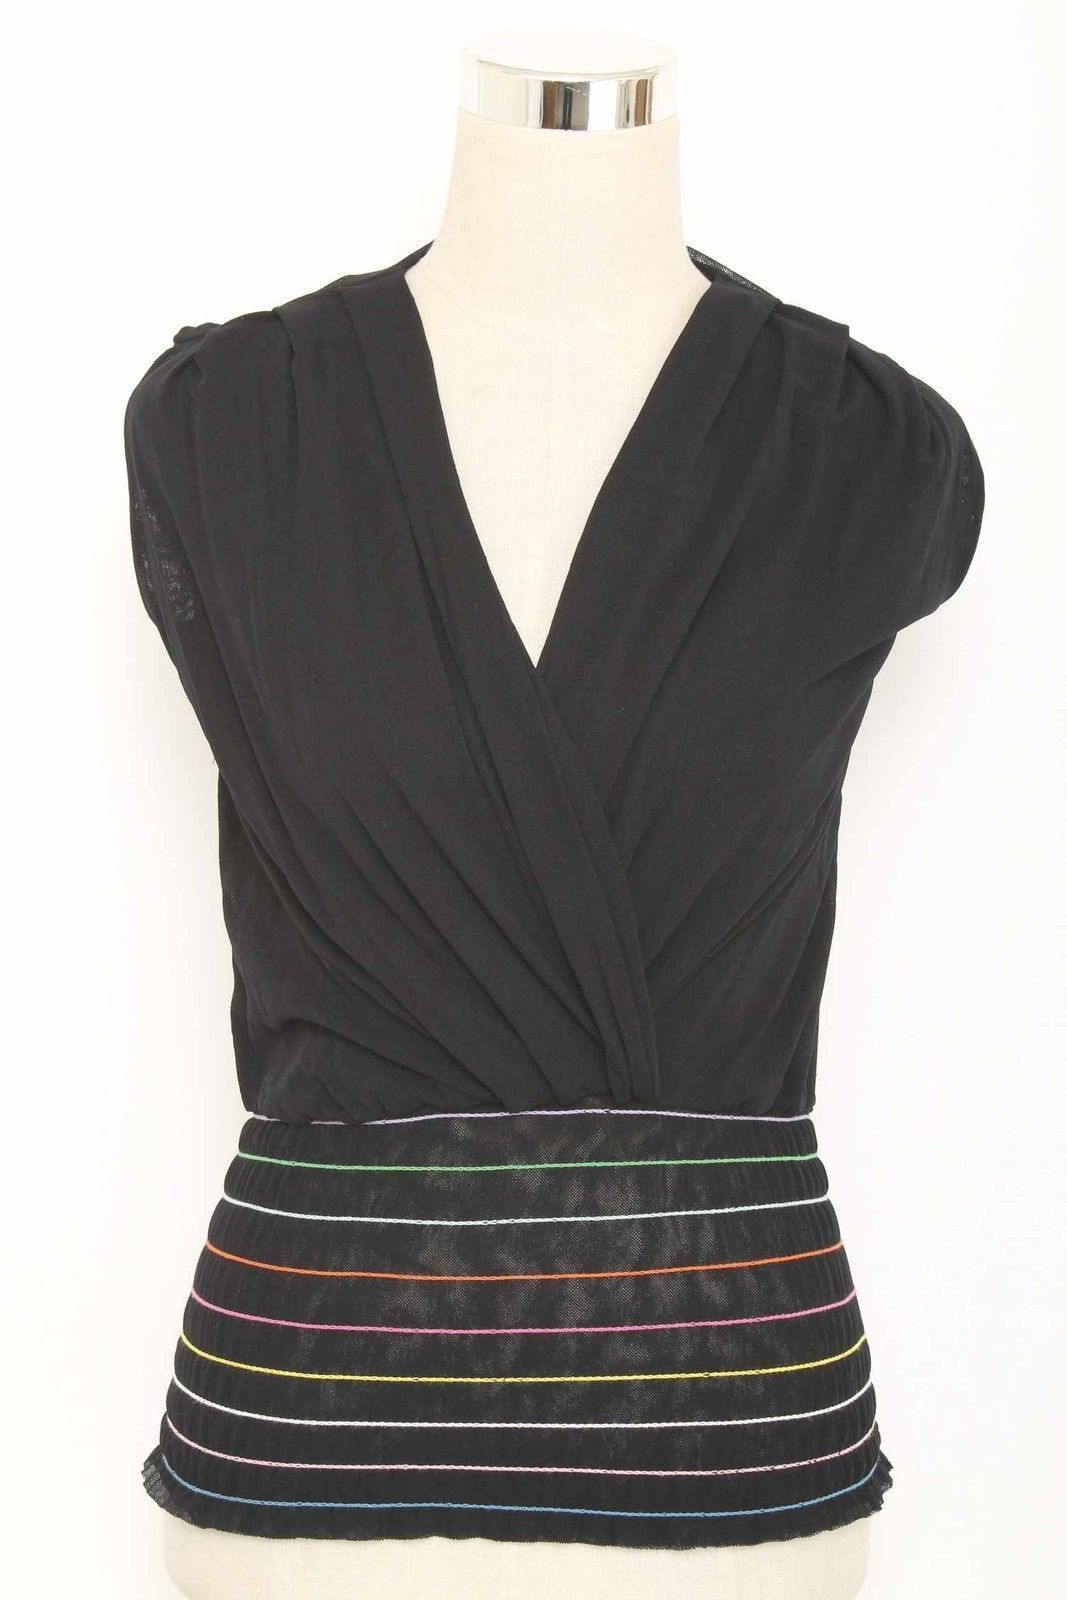 Sweet Pea Black Sleeveless Mesh Knit Top Size S 2143 ST1215